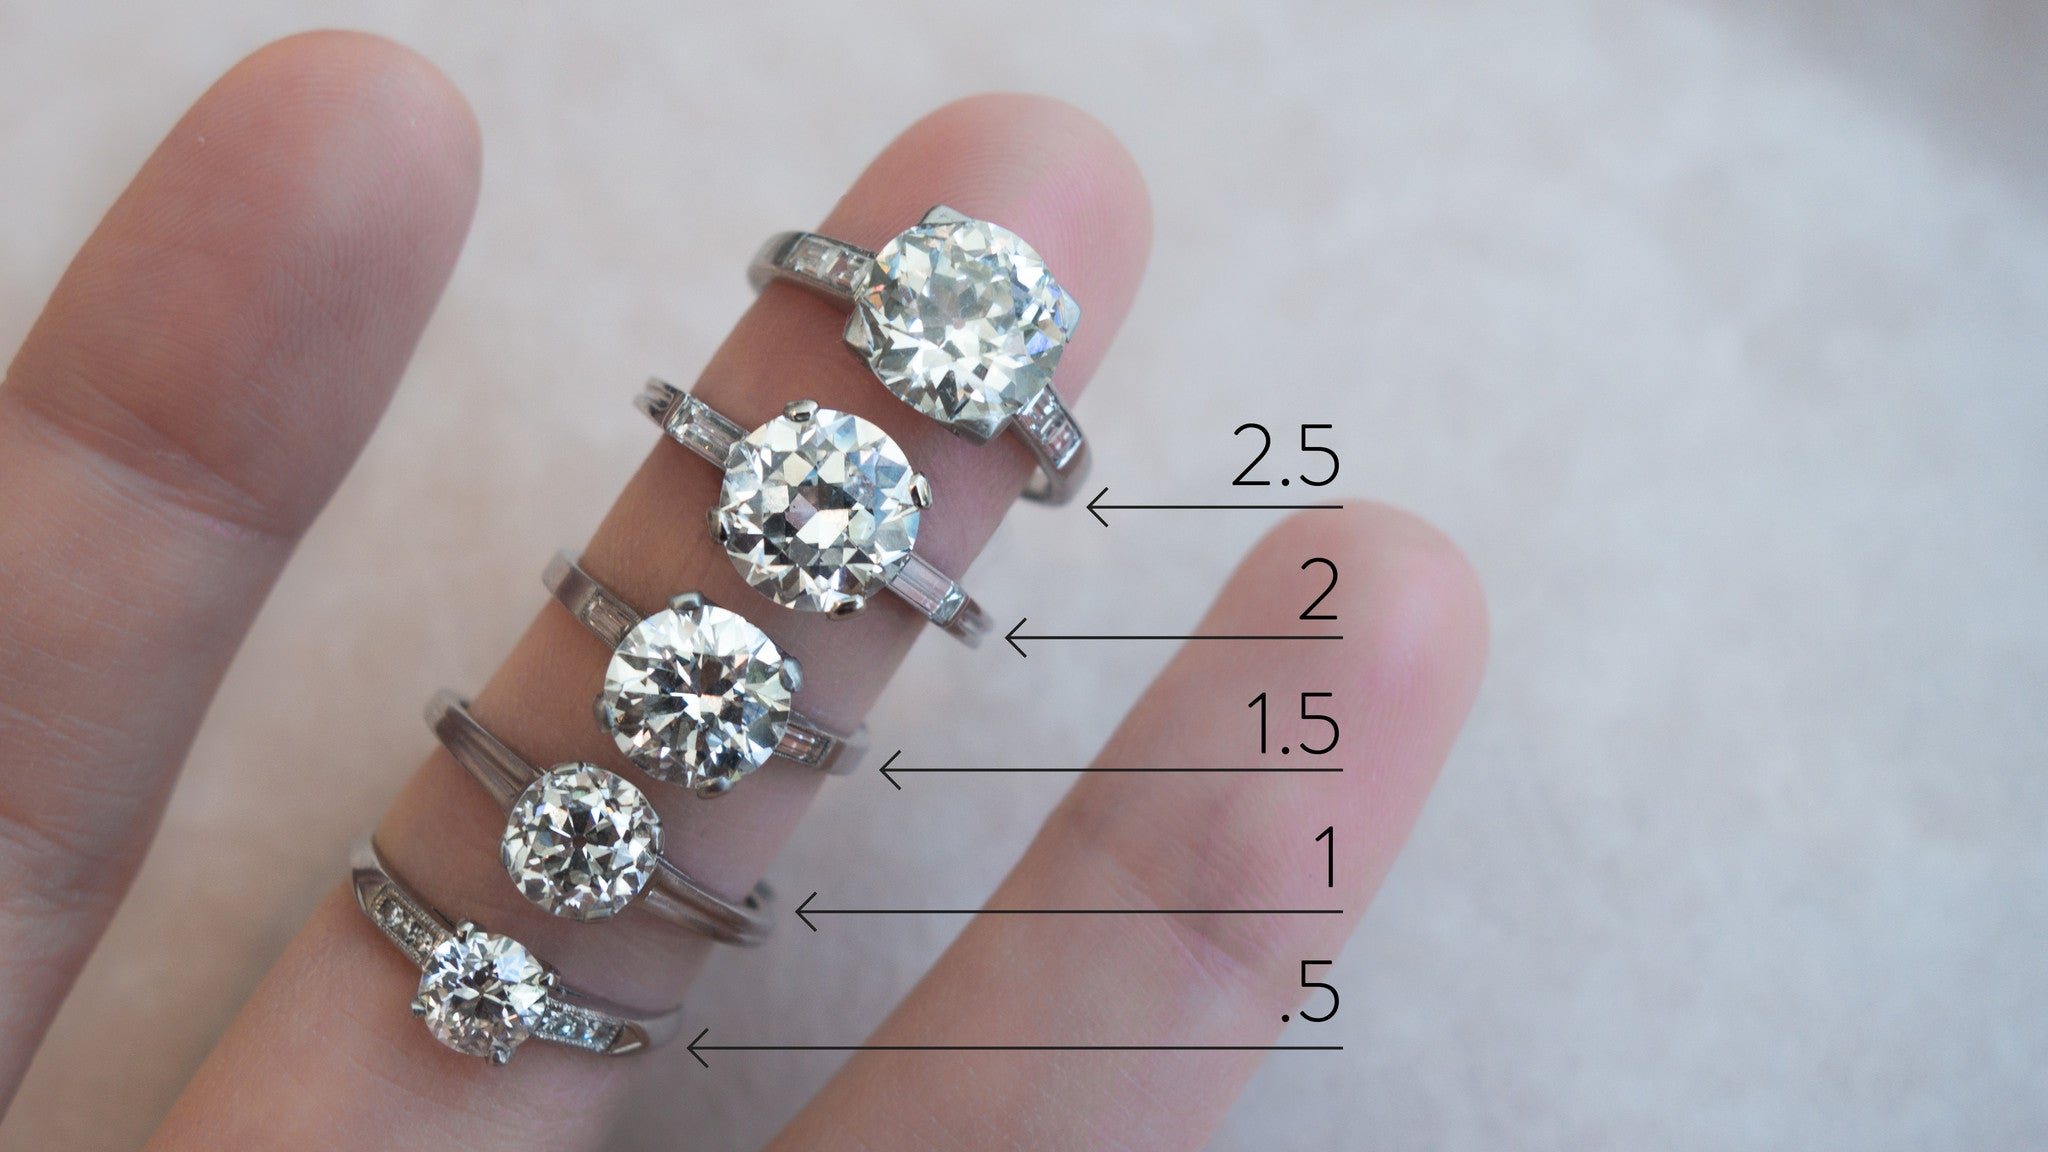 ct one finger a mysparkly engagement com or diamond round size on carat rings review